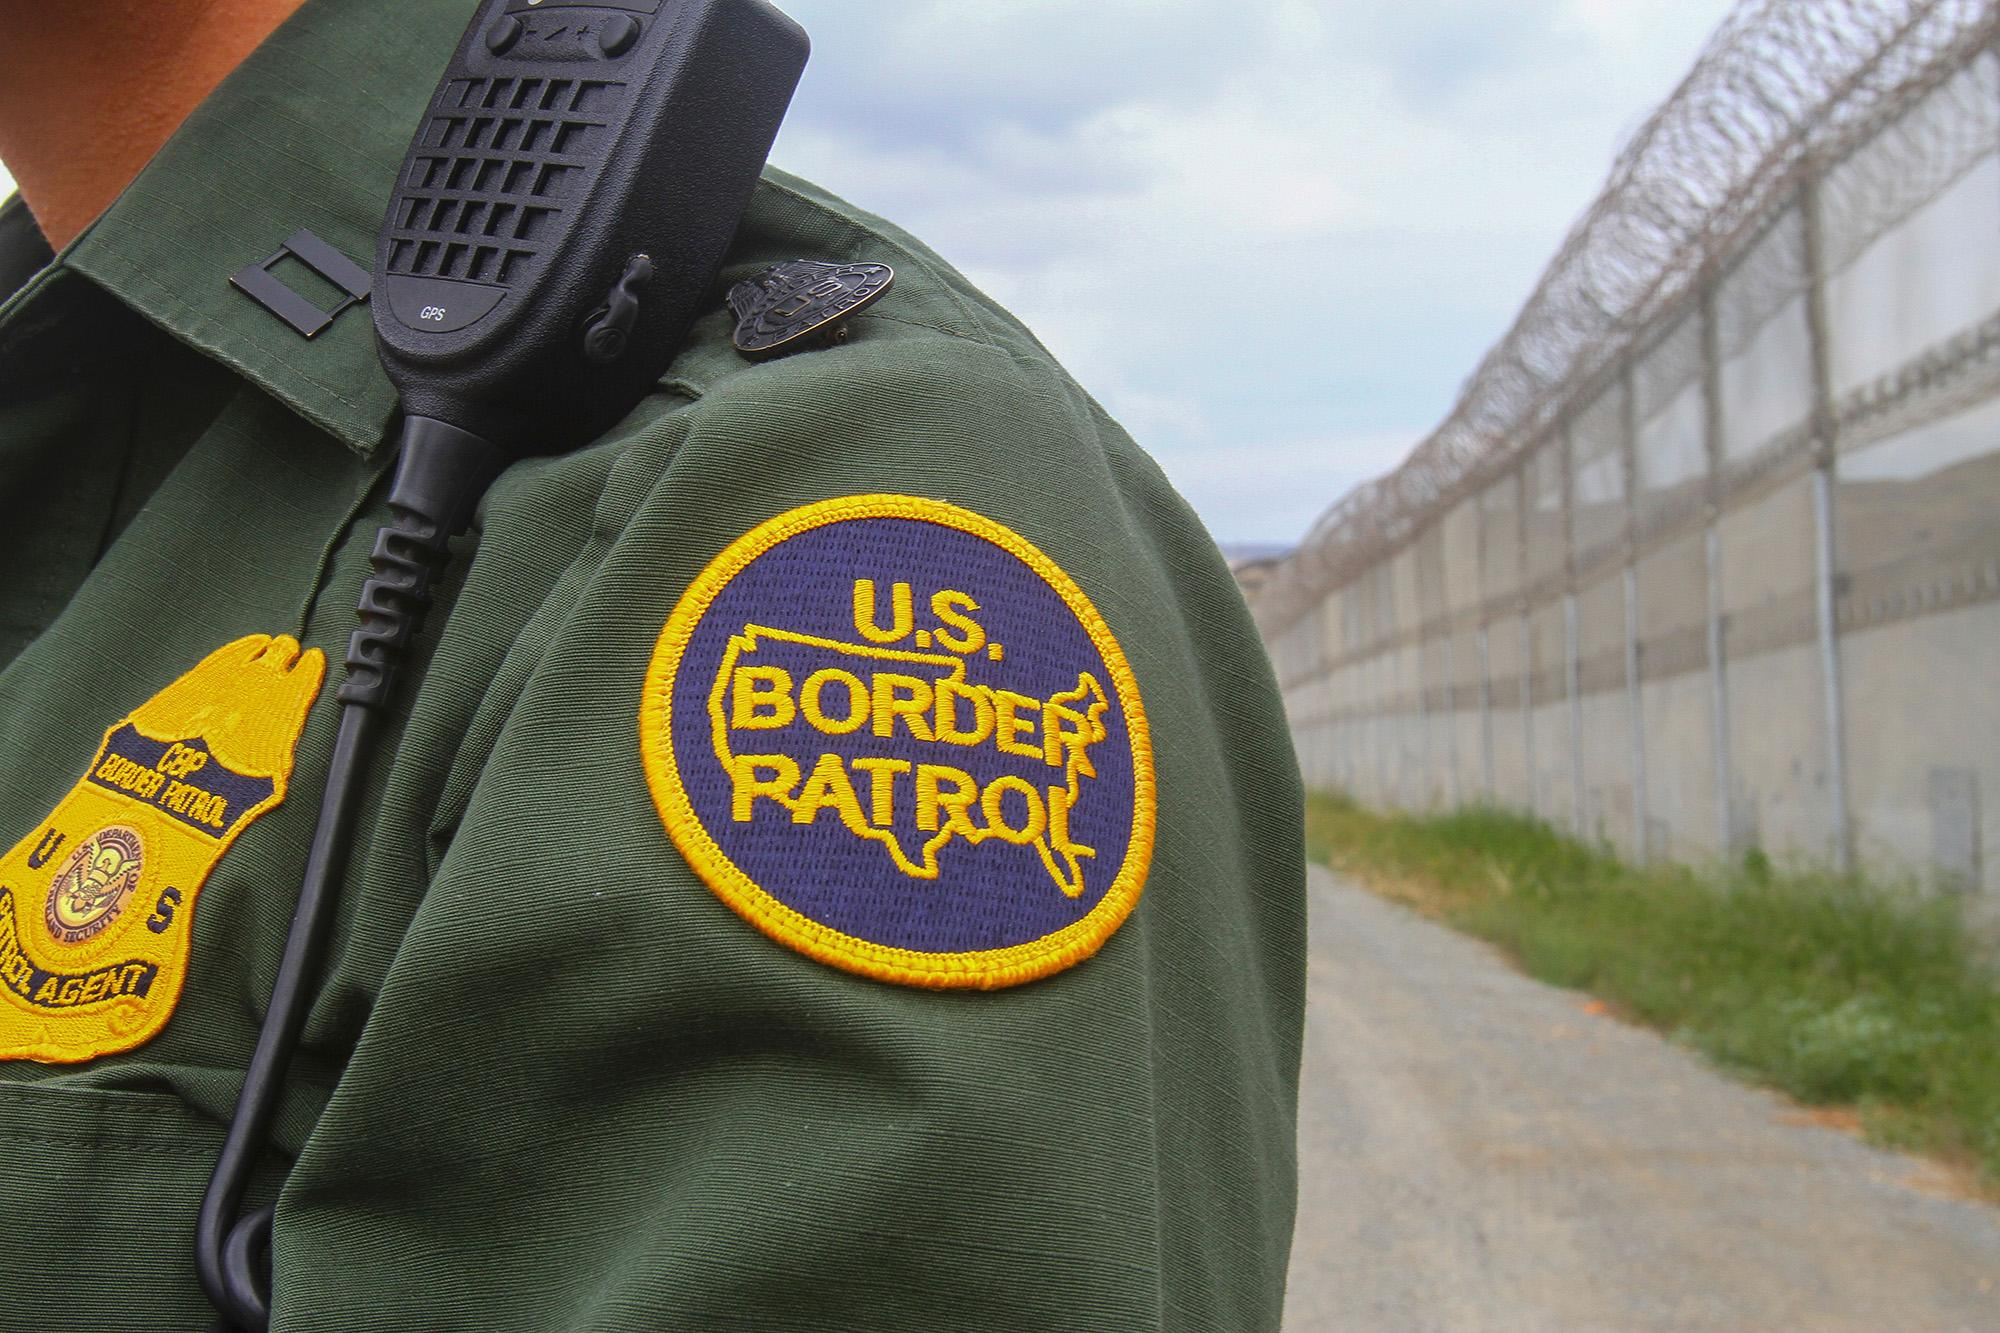 Human smuggling attempt involving 49 immigrants halted at Laredo checkpoint